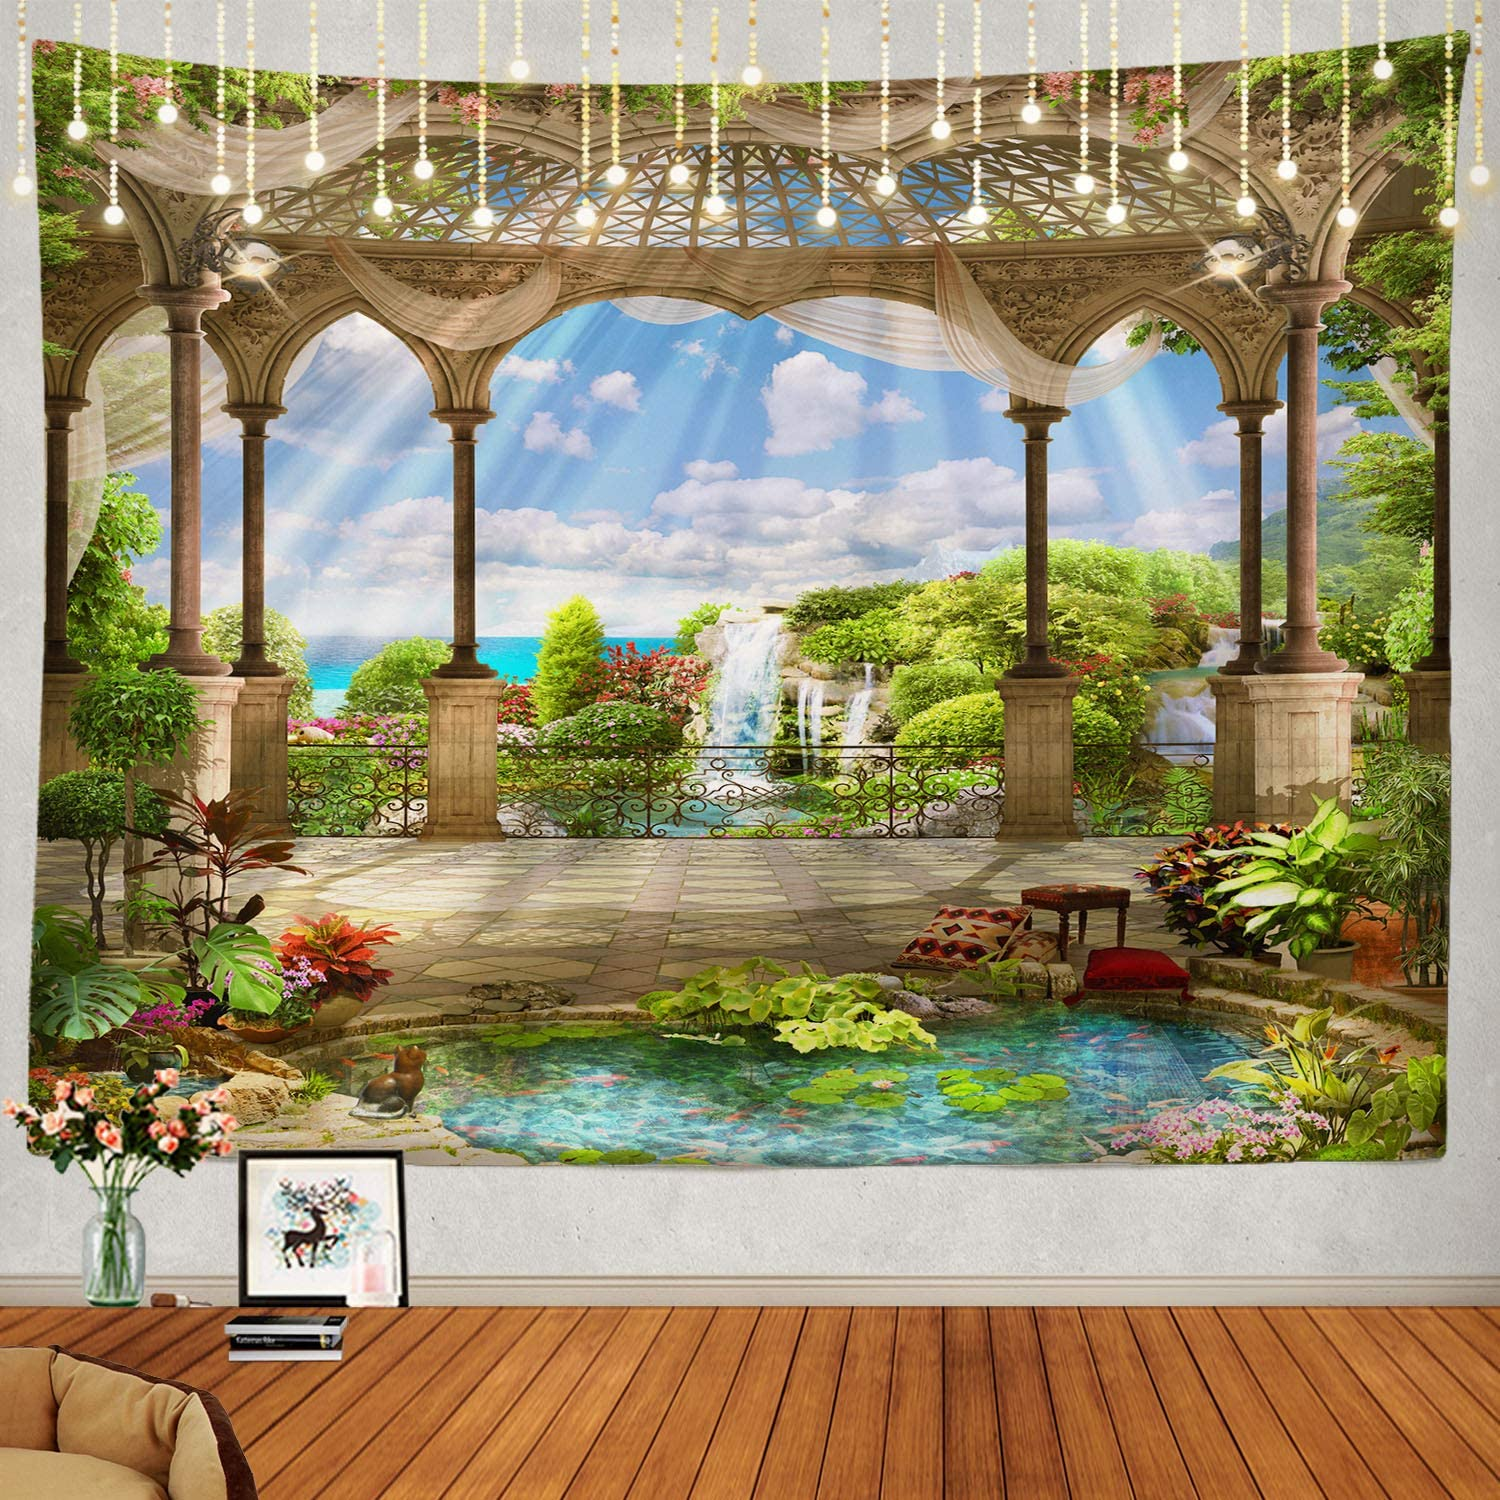 Shrahala Beautiful Tapestry, Waterfall Nature Scenery Landscape Wall Hanging Large Tapestry Psychedelic Tapestry Decorations Bedroom Living Room Dorm(59.1 x 82.7 Inches, Green 2)